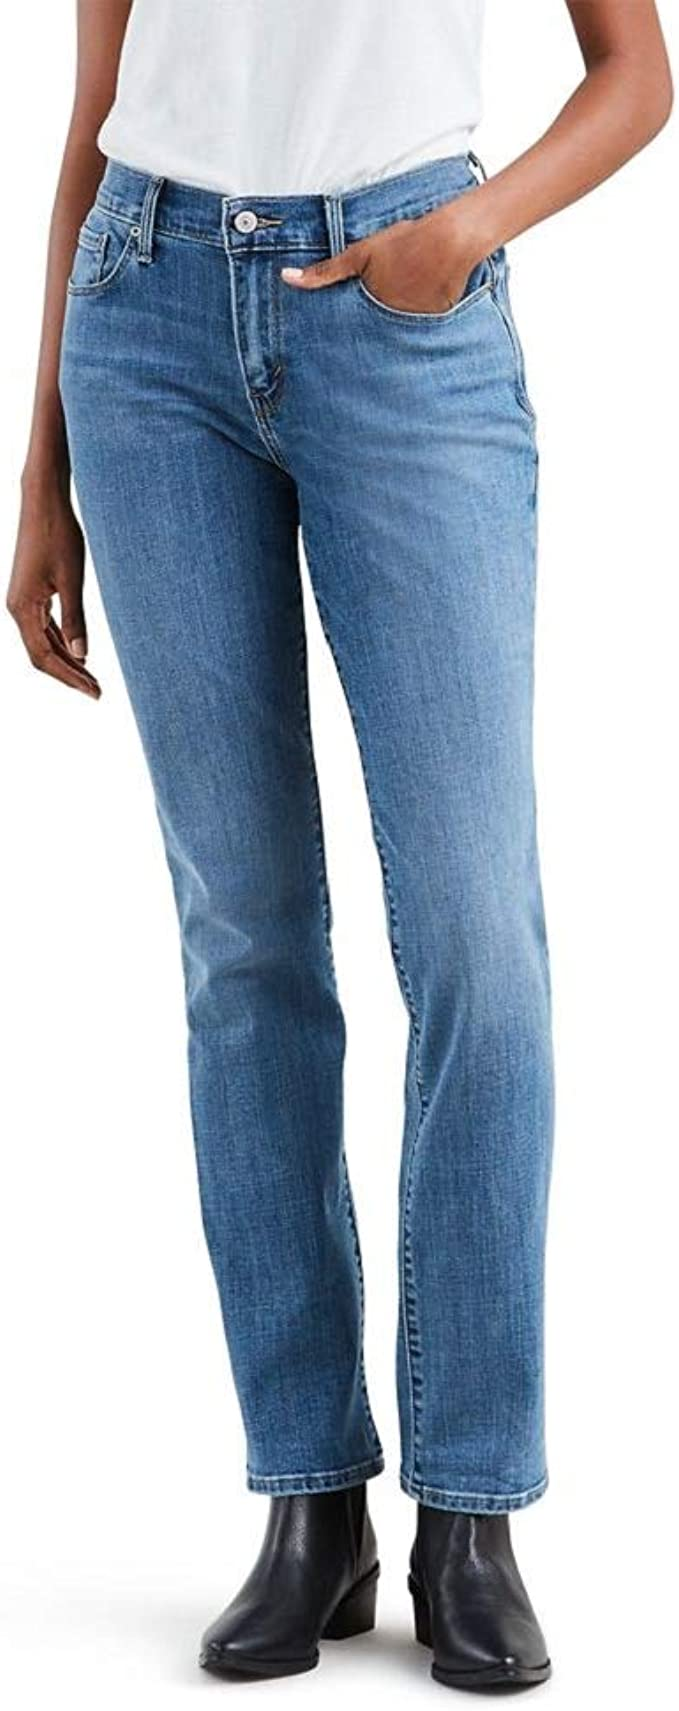 Levi's Women's Straight 505 Jeans Straight leg boot cut denim jeans | Womens Denim Fashion Jeans